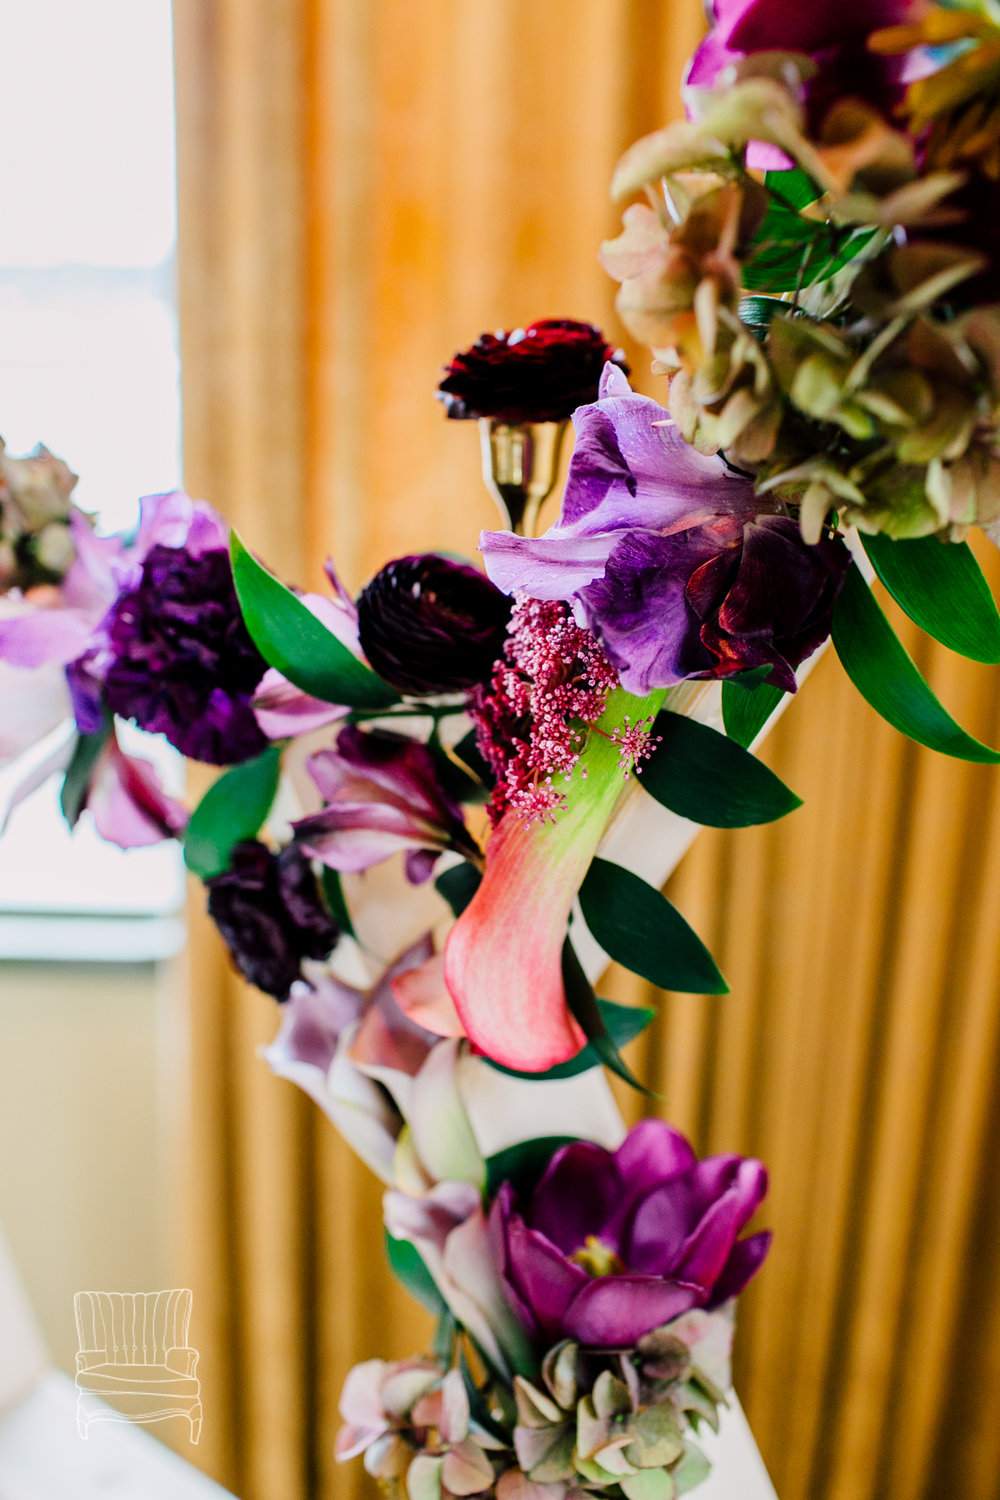 bellwether-hotel-bellingham-wedding-photographer-katheryn-moran-glitz-glam-styled-460.jpg